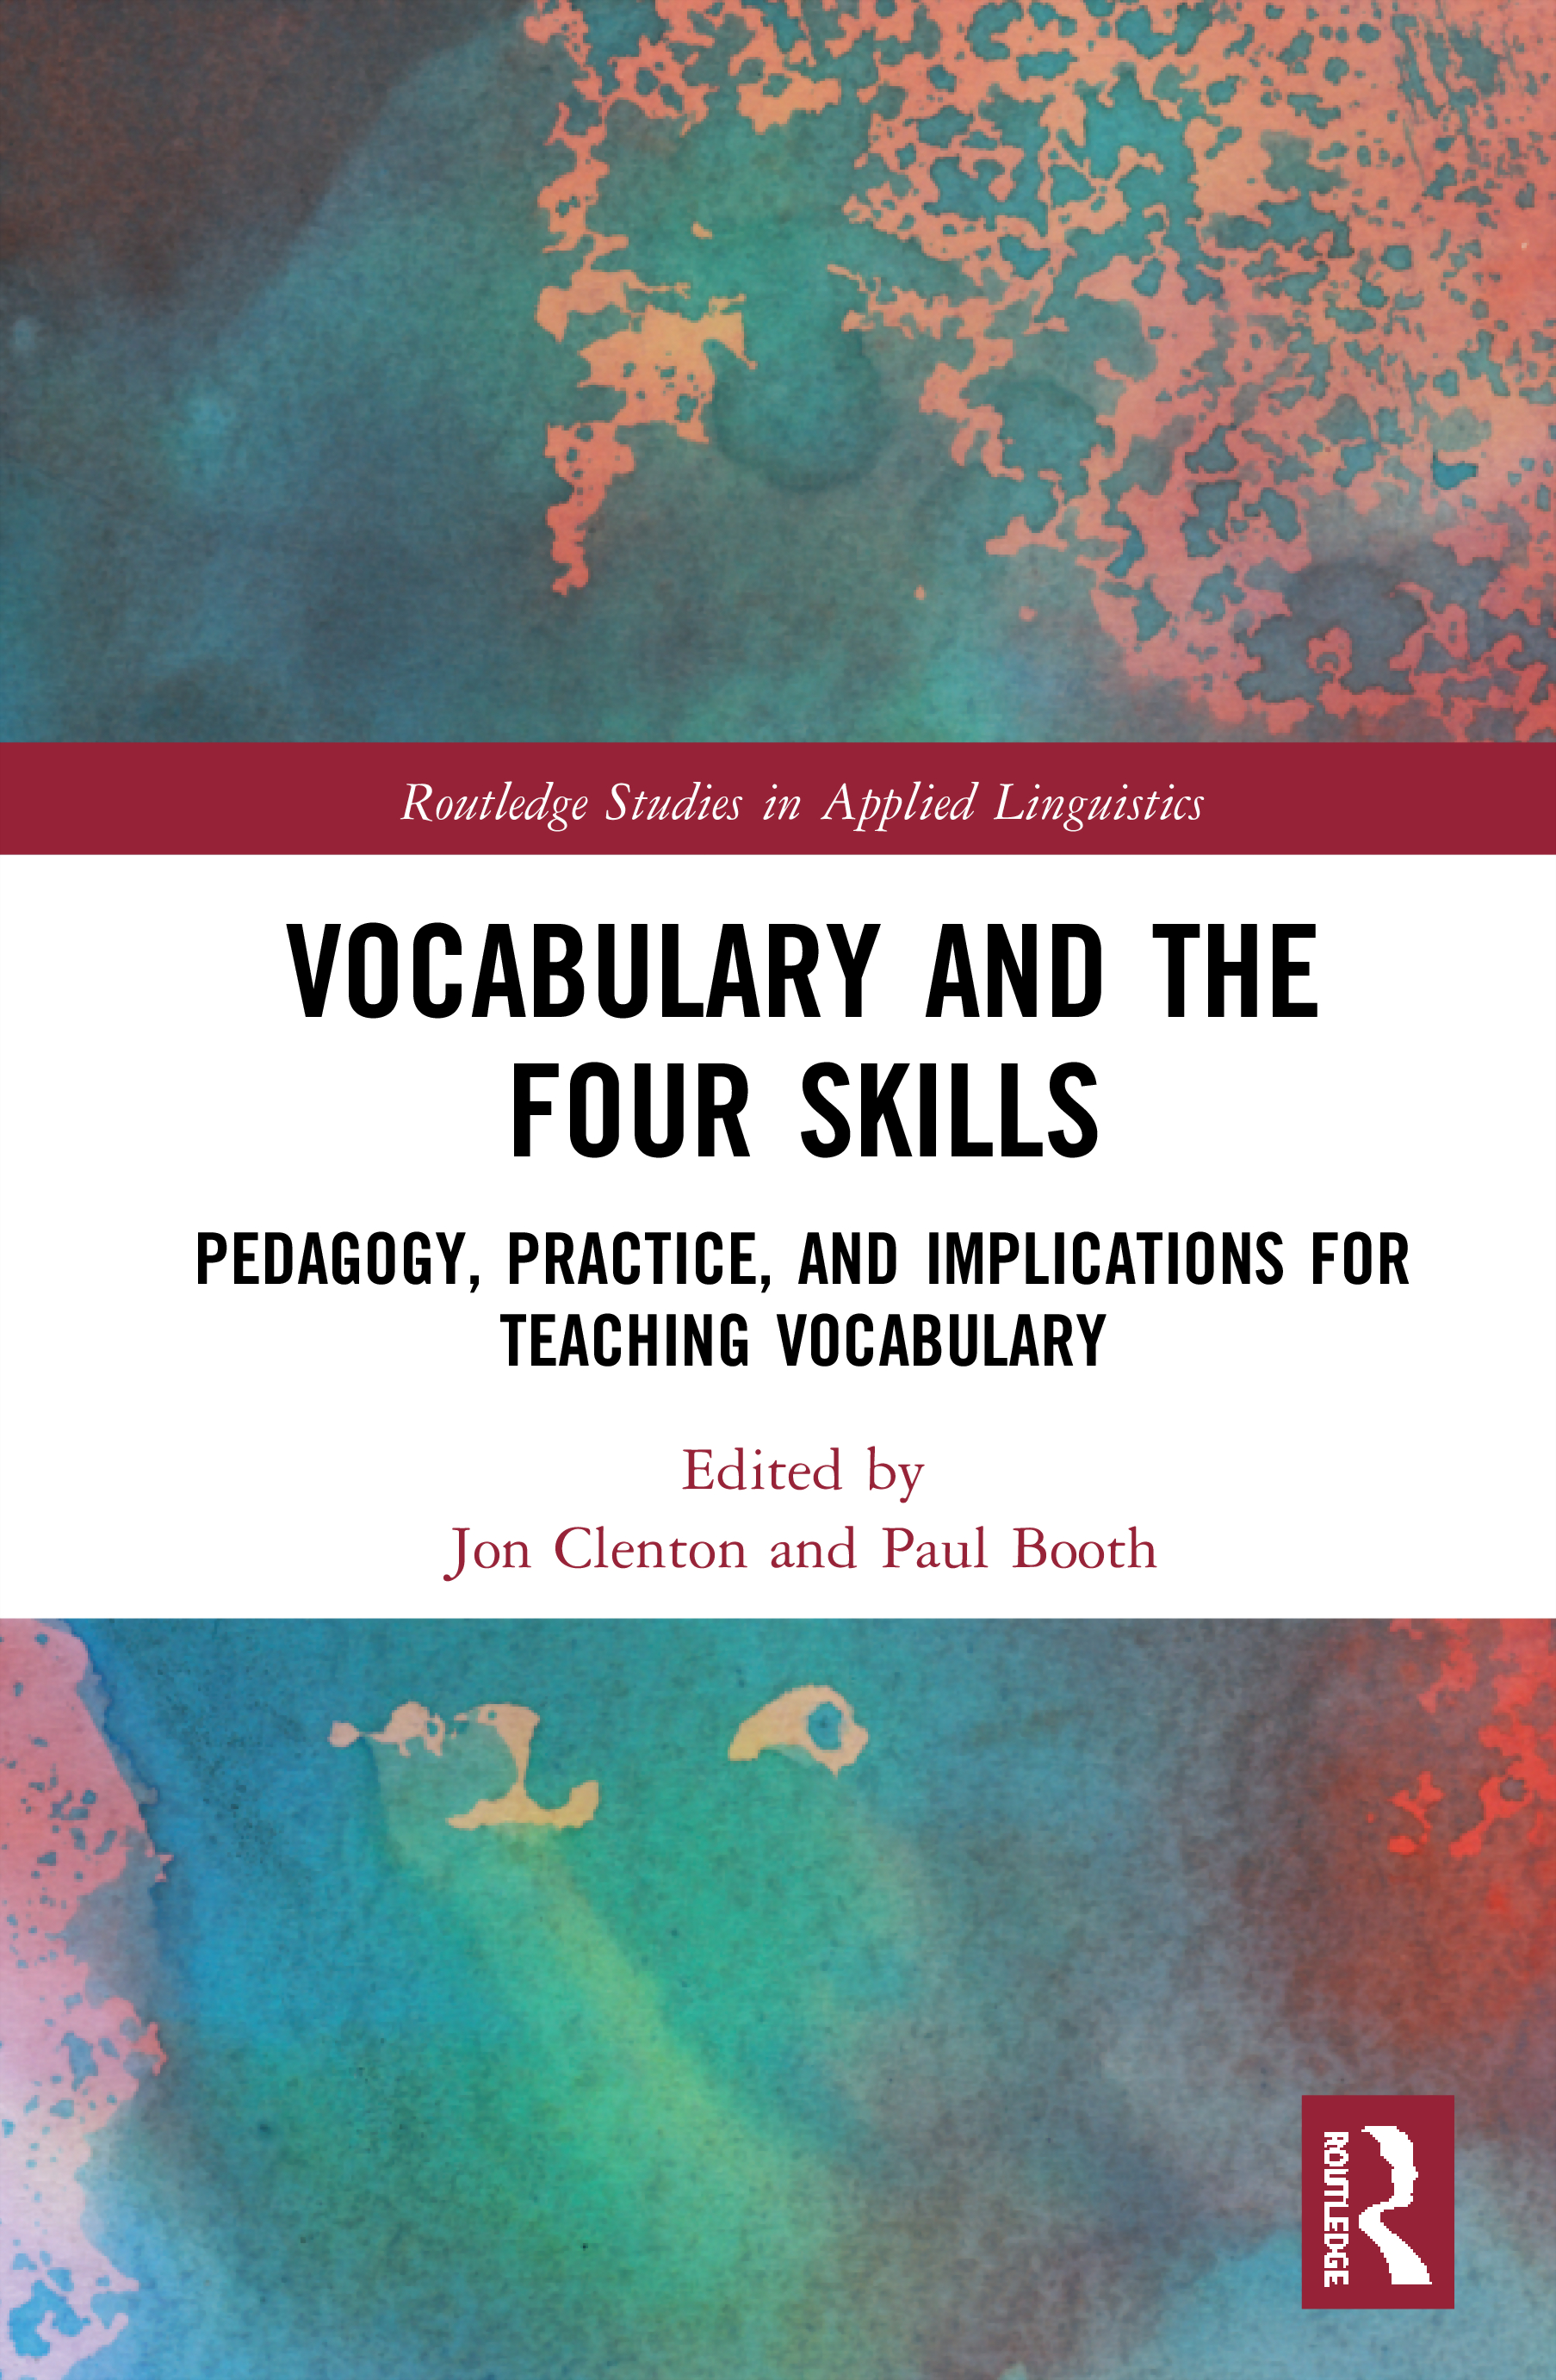 Vocabulary and the Four Skills: Pedagogy, Practice, and Implications for Teaching Vocabulary book cover